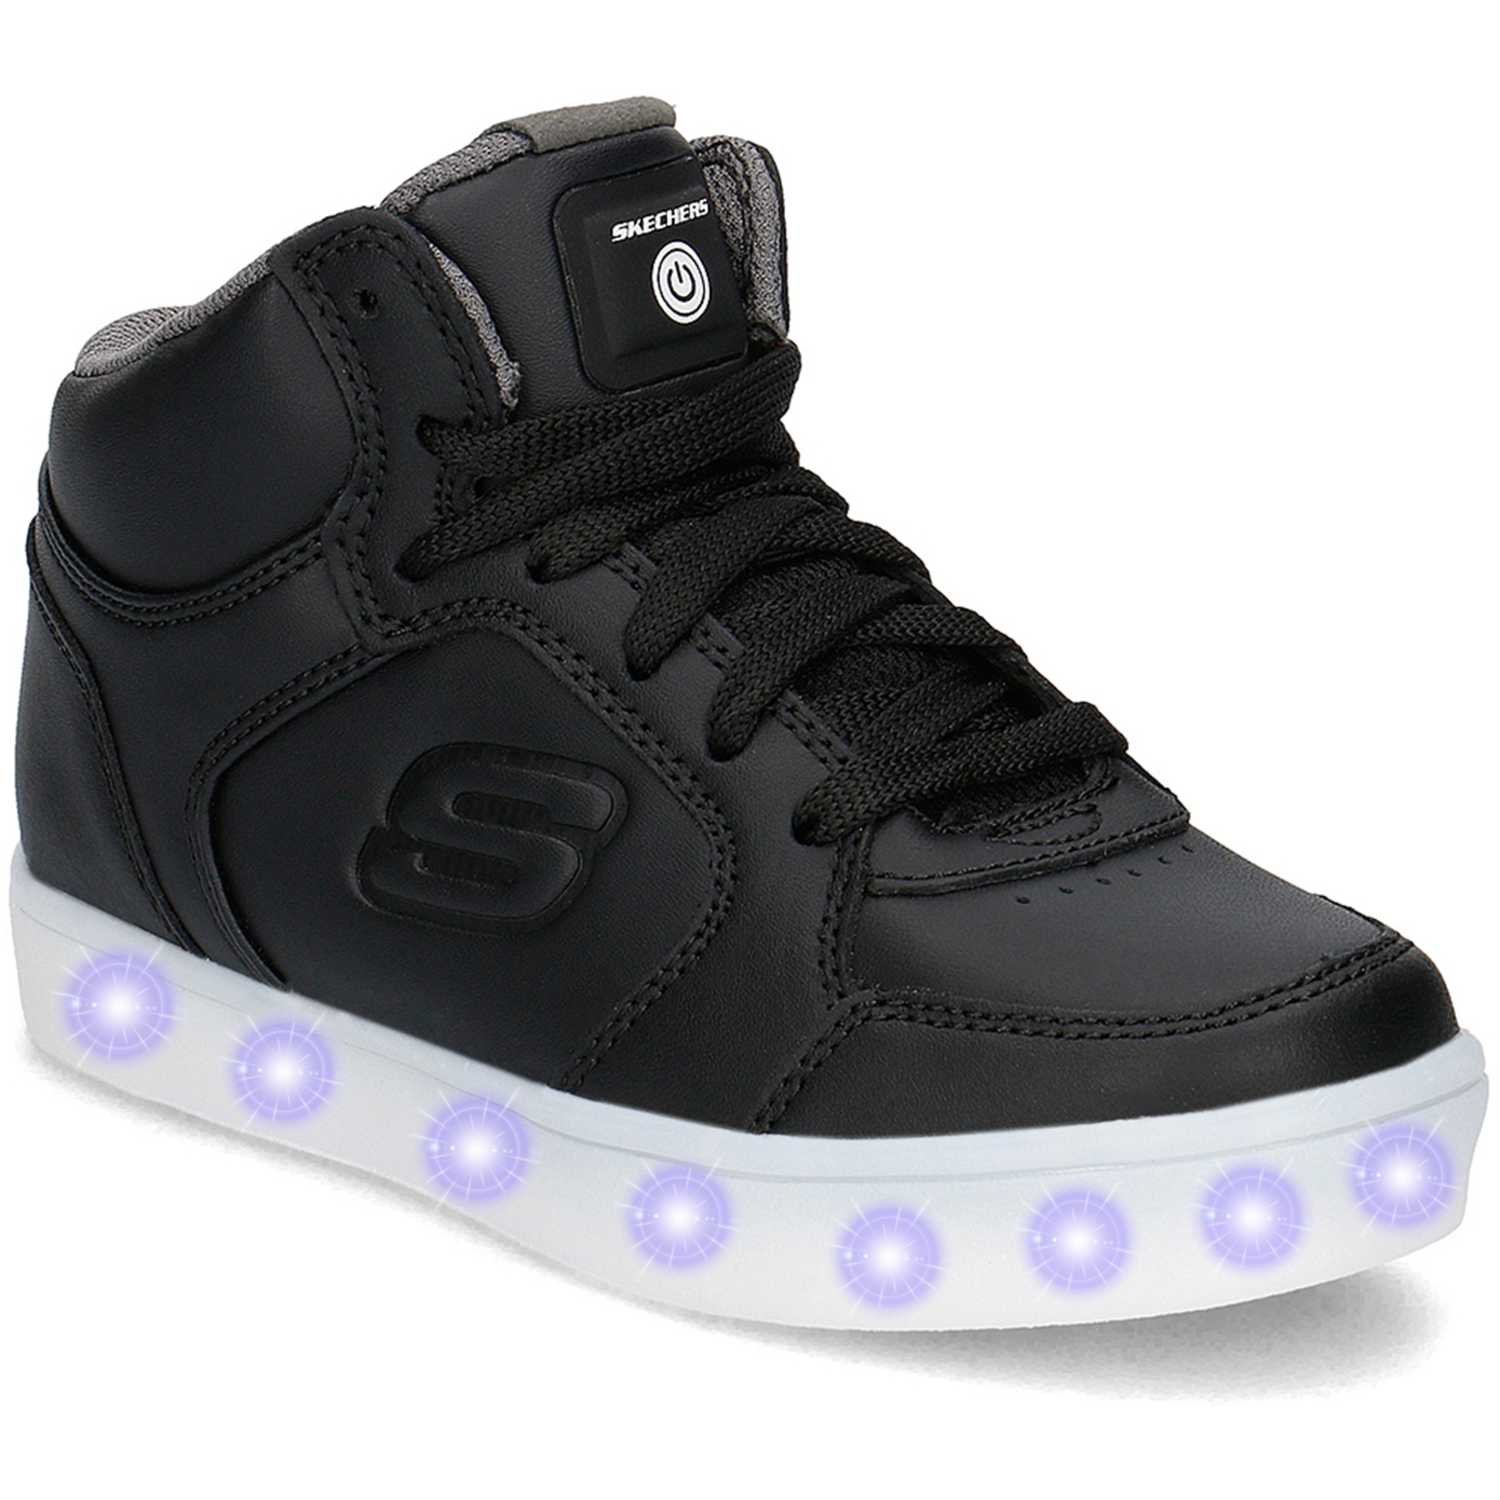 69e766a1 Zapatilla de Niño Skechers Negro energy lights 90600l - con luces ...